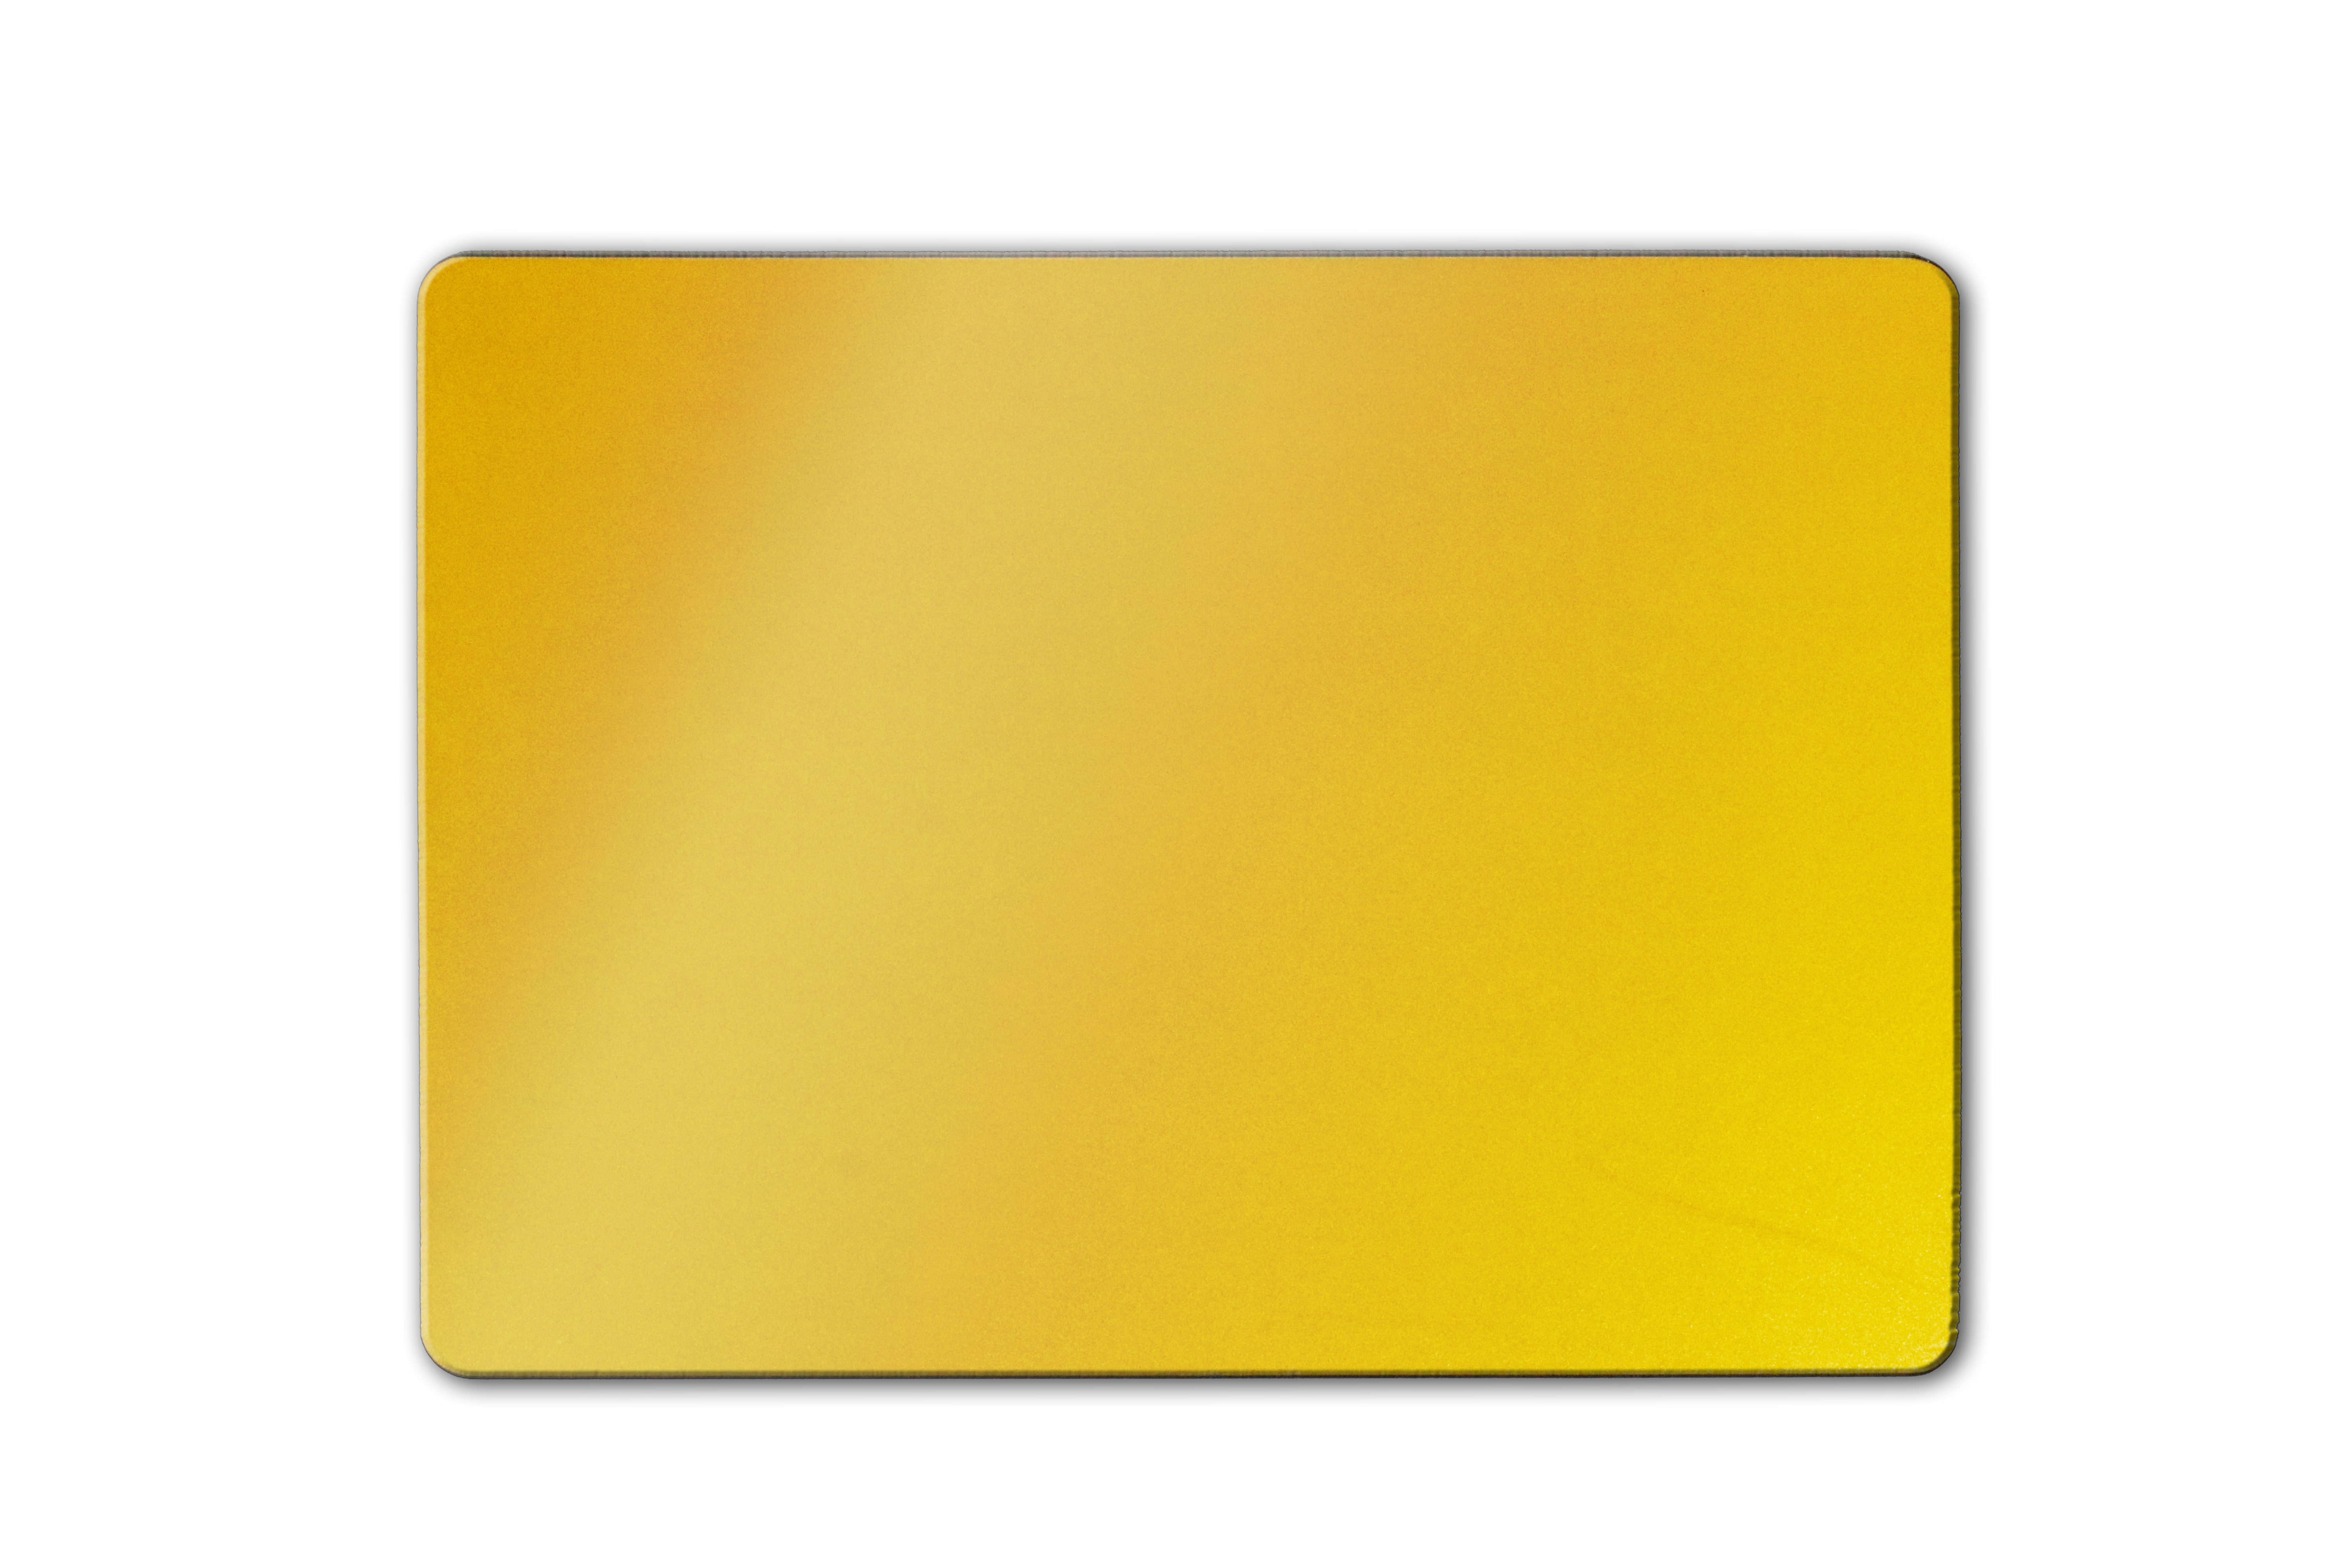 Eco-plate 4x4 square yellow ABS backing: 284 x 210mm